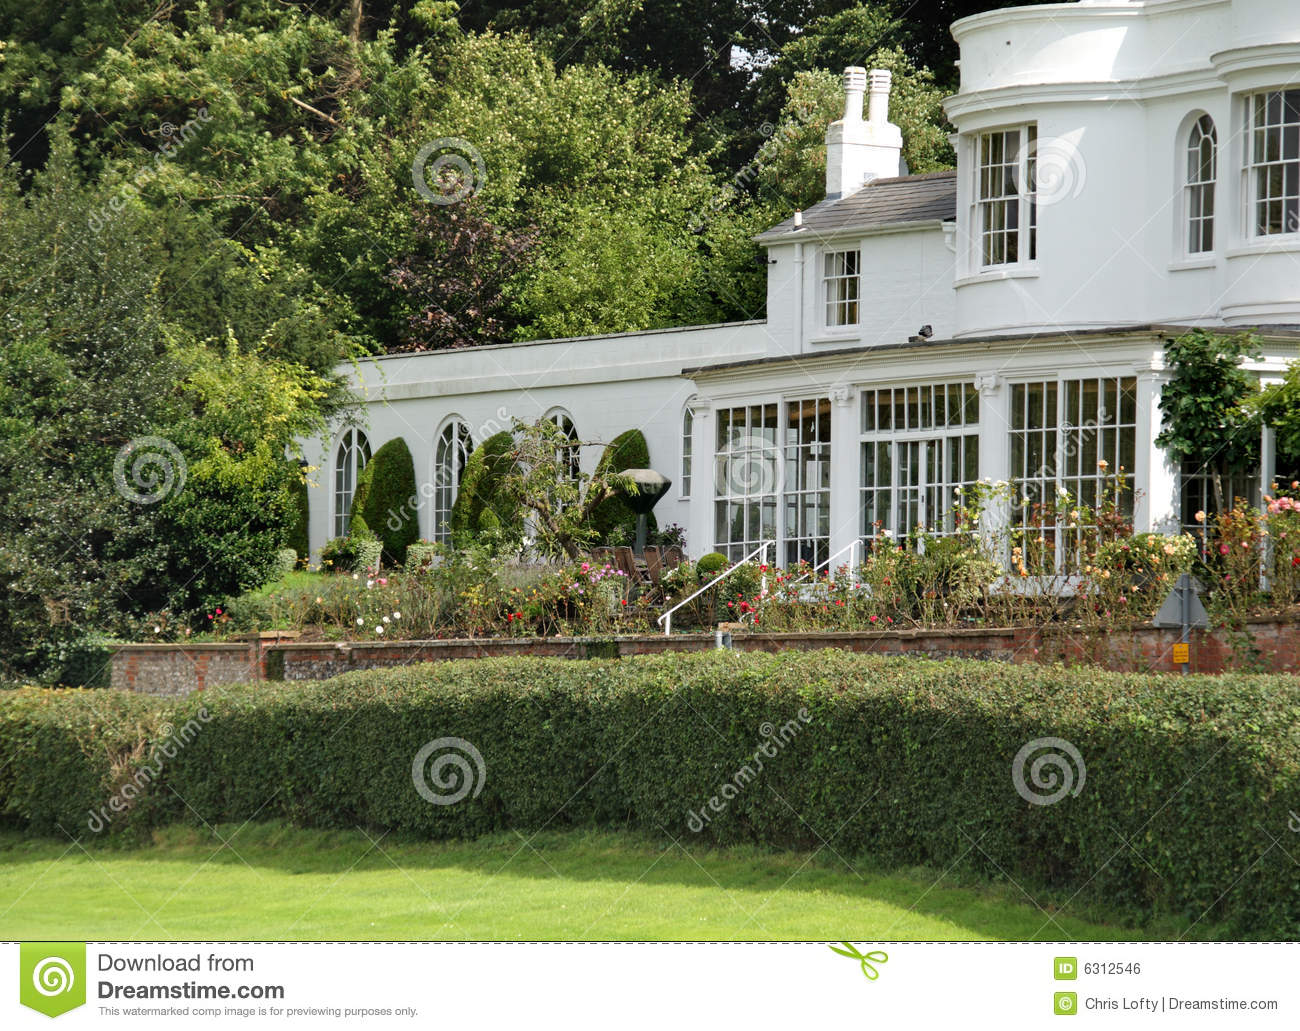 Maison de campagne et jardin anglais photo stock image for Photo de jardin anglais